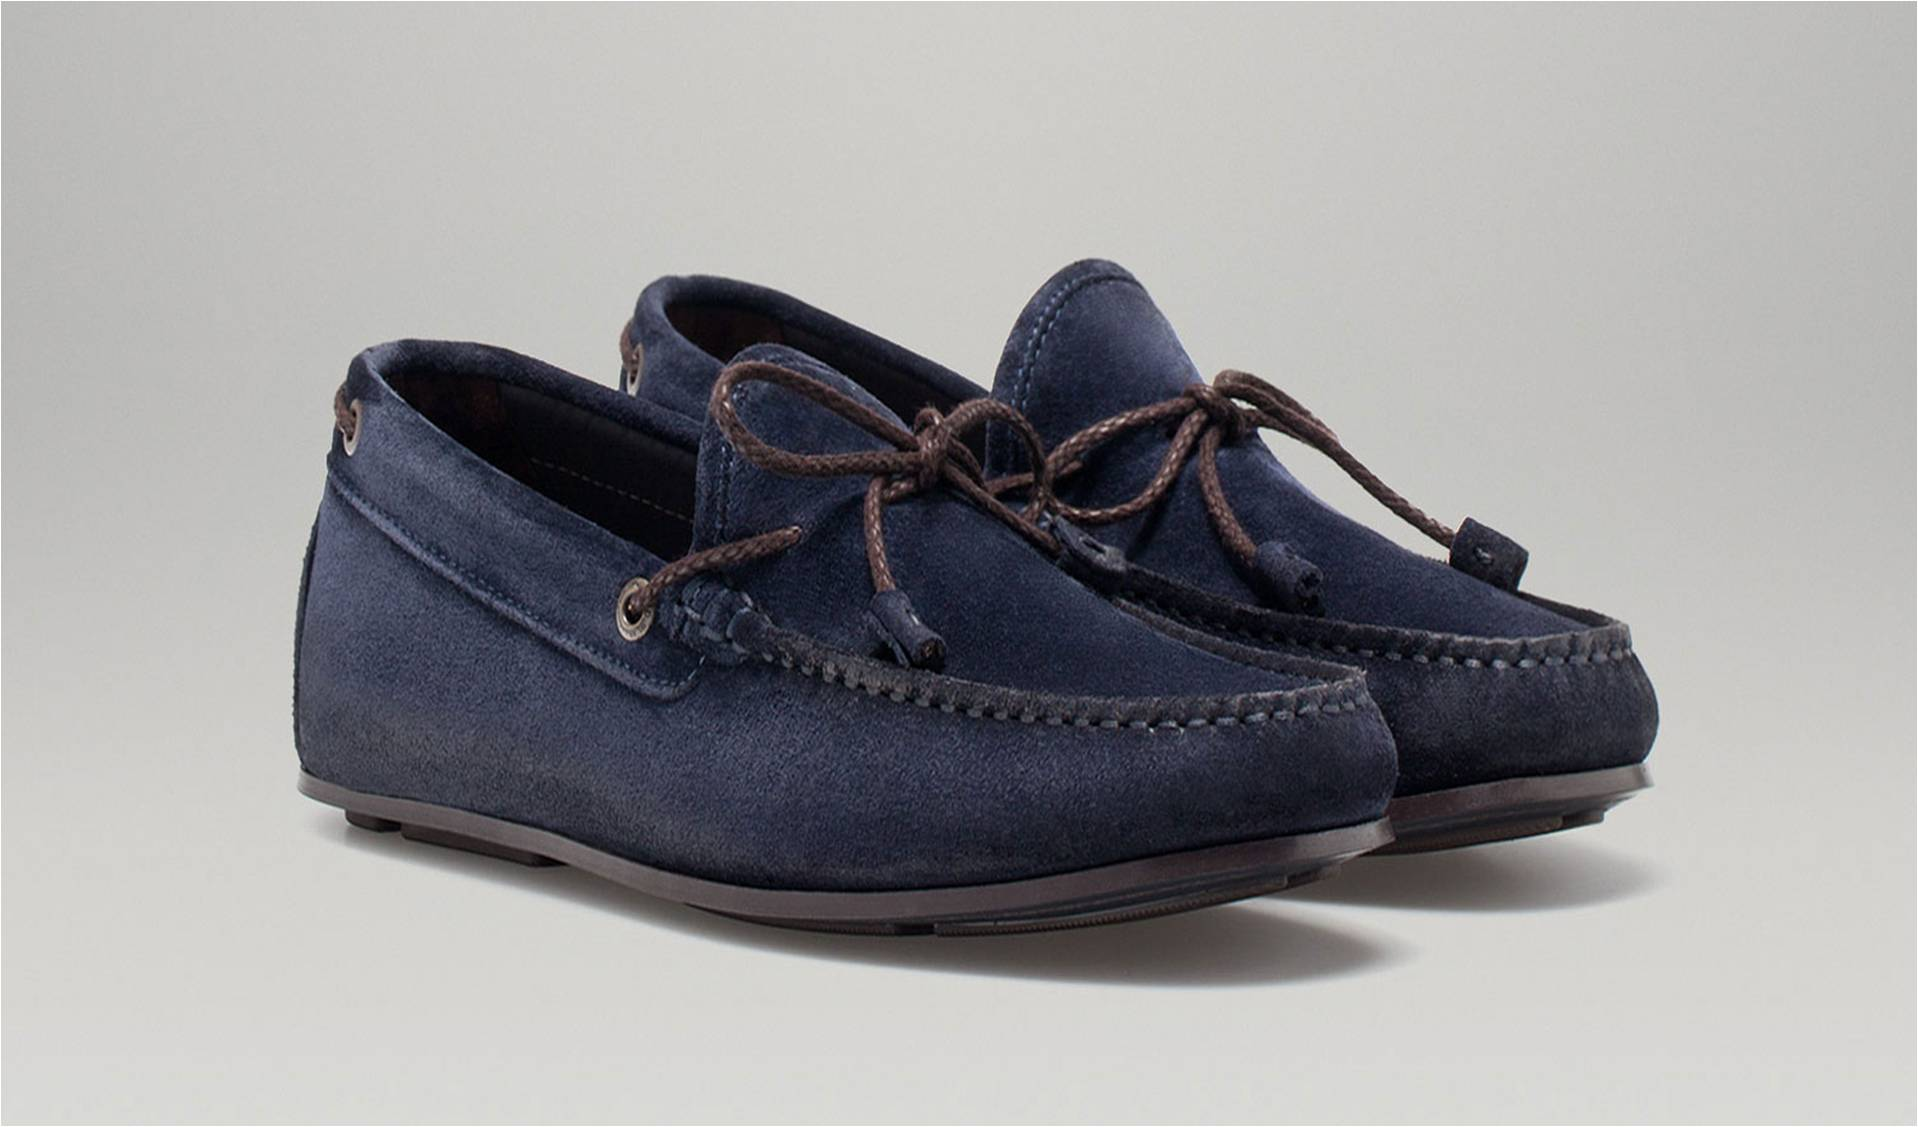 f65fea9122d Fashion Review   Semi Casual Blue Suede Moccasin Massimo Dutti